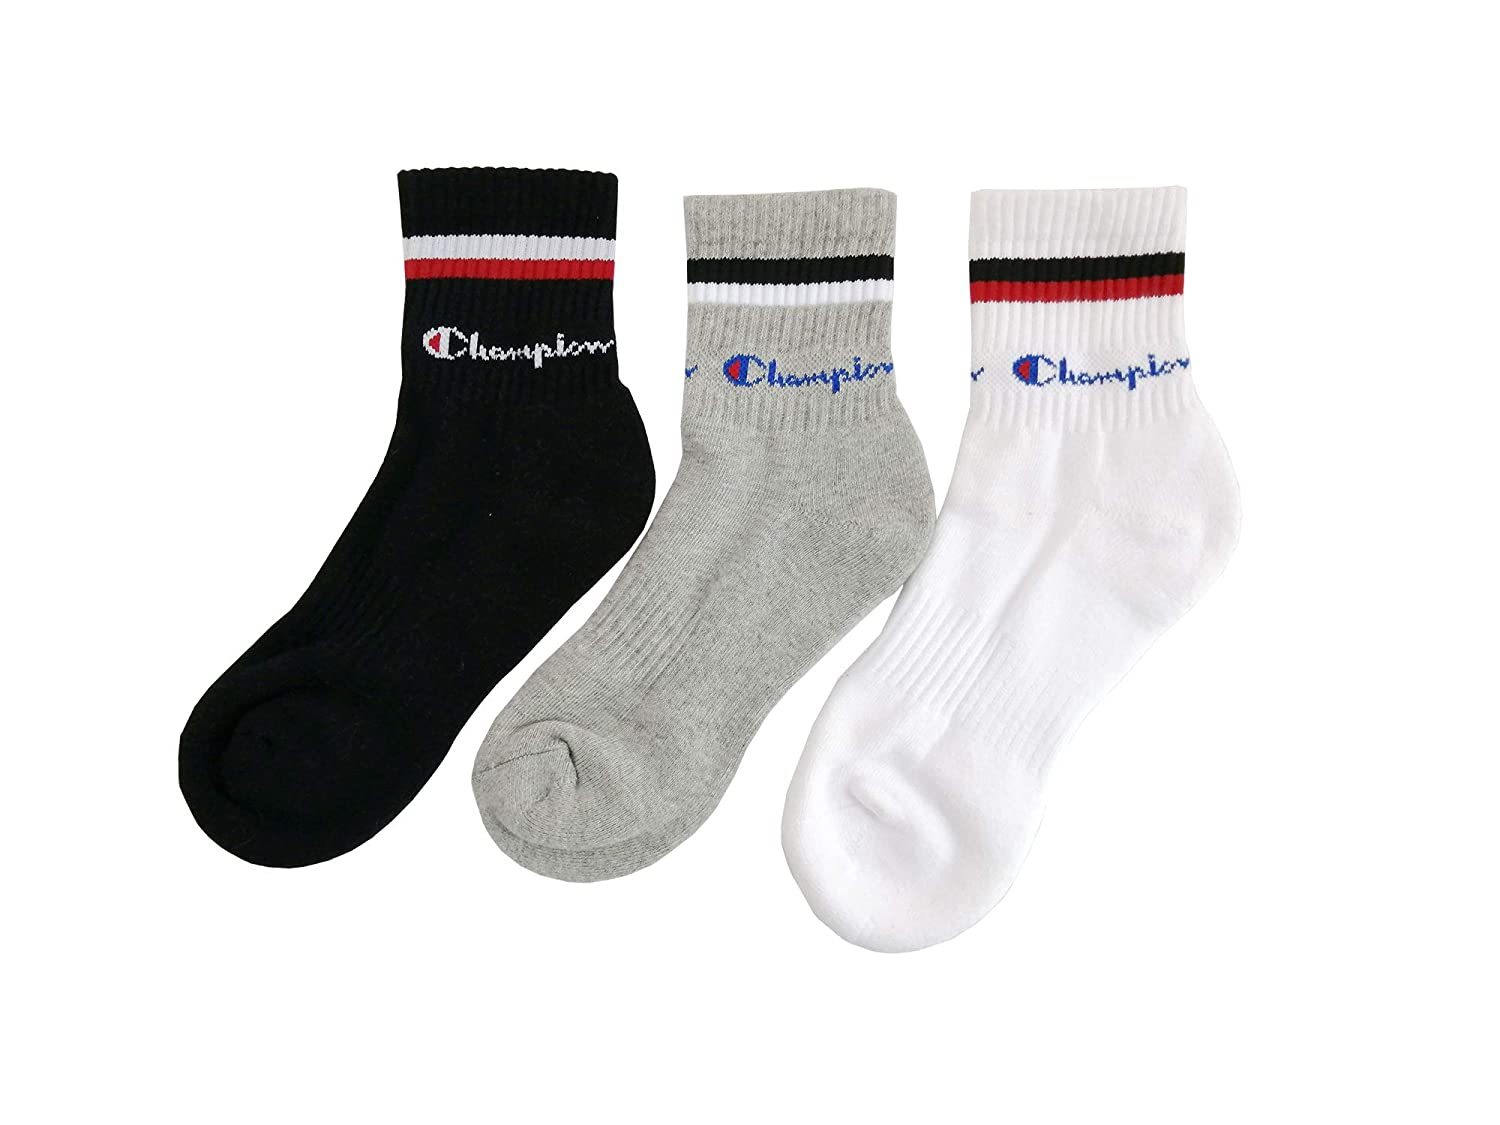 free shipping outlet on sale on feet images of Champion Men's 3-Pack Double Dry Performance Quarter Socks Crew Low Cut Sock